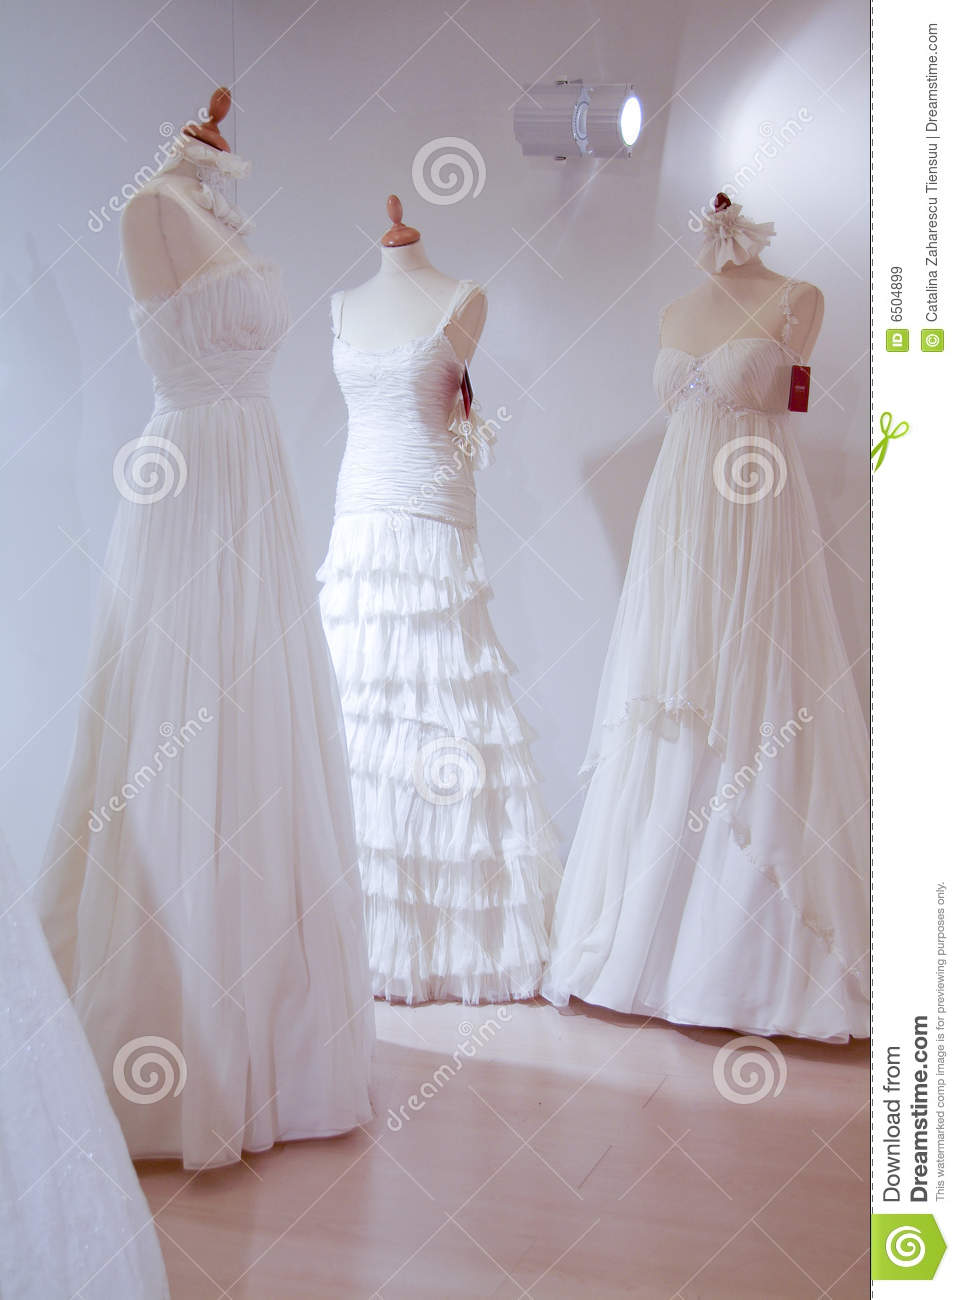 Wedding Dresses Royalty Free Stock Images Image 6504899